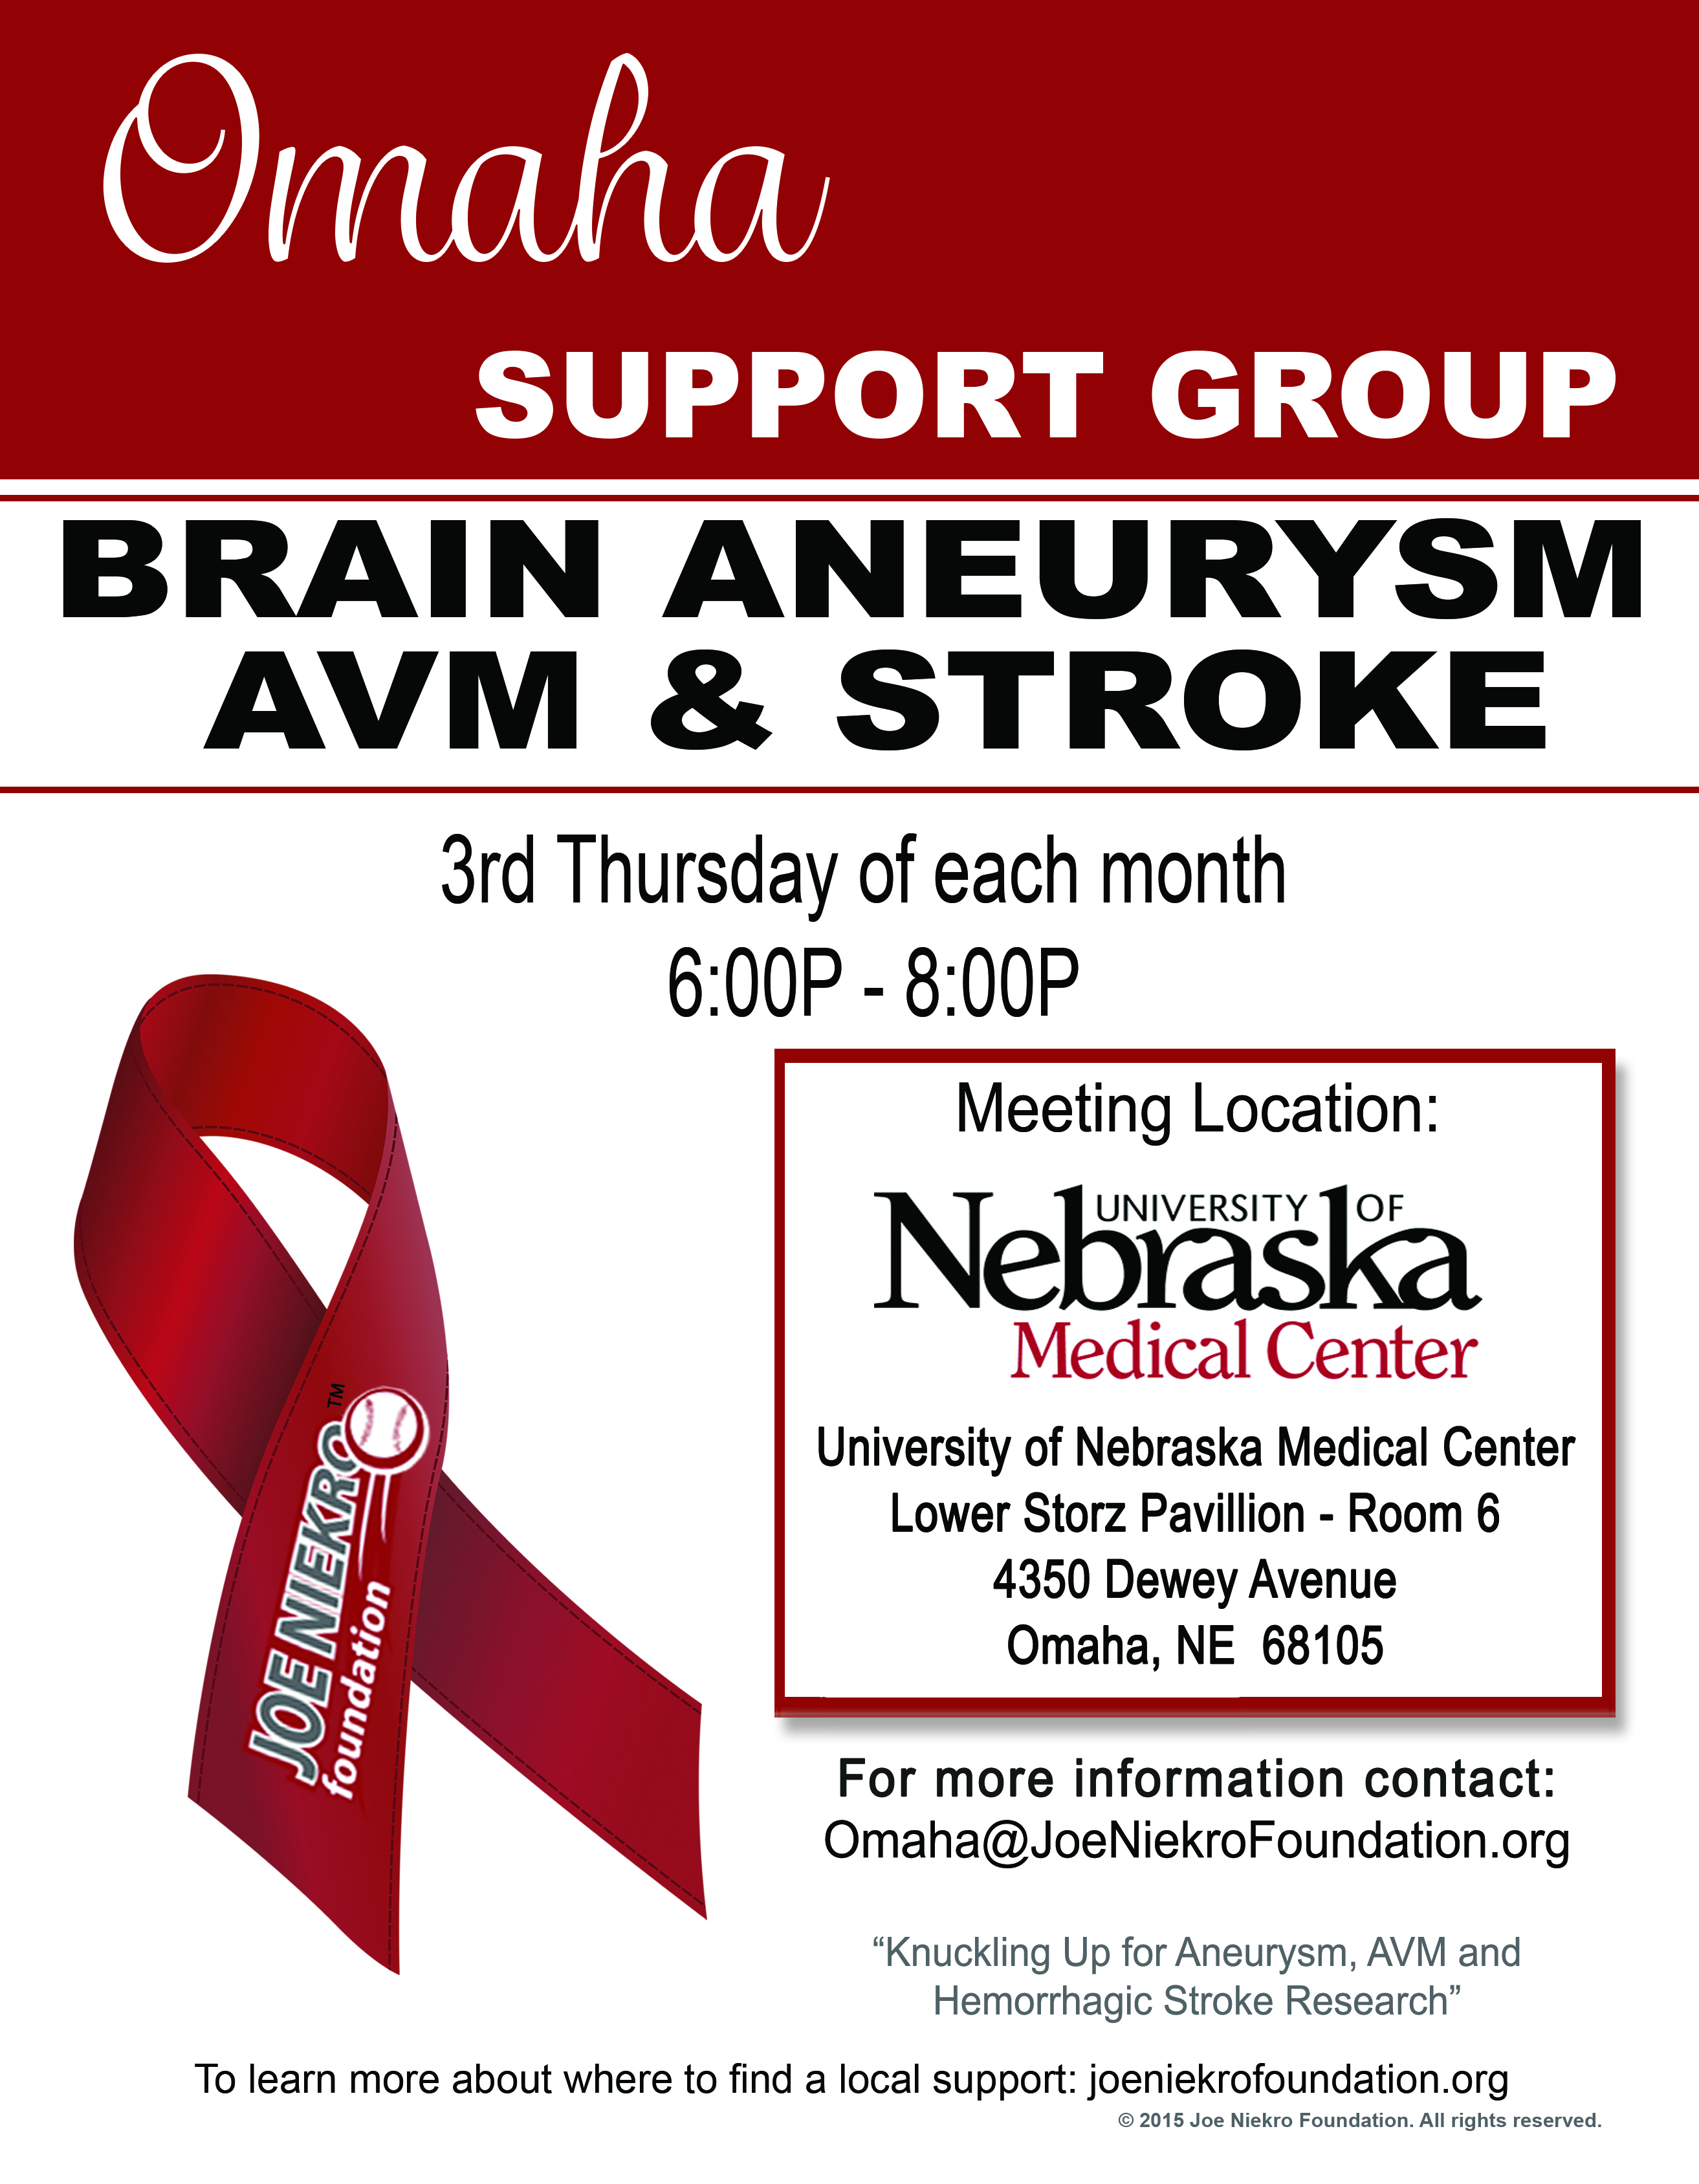 http://www.joeniekrofoundation.com/patient-caregiver-support/support-groups/locations/attachment/omaha-poster-2/